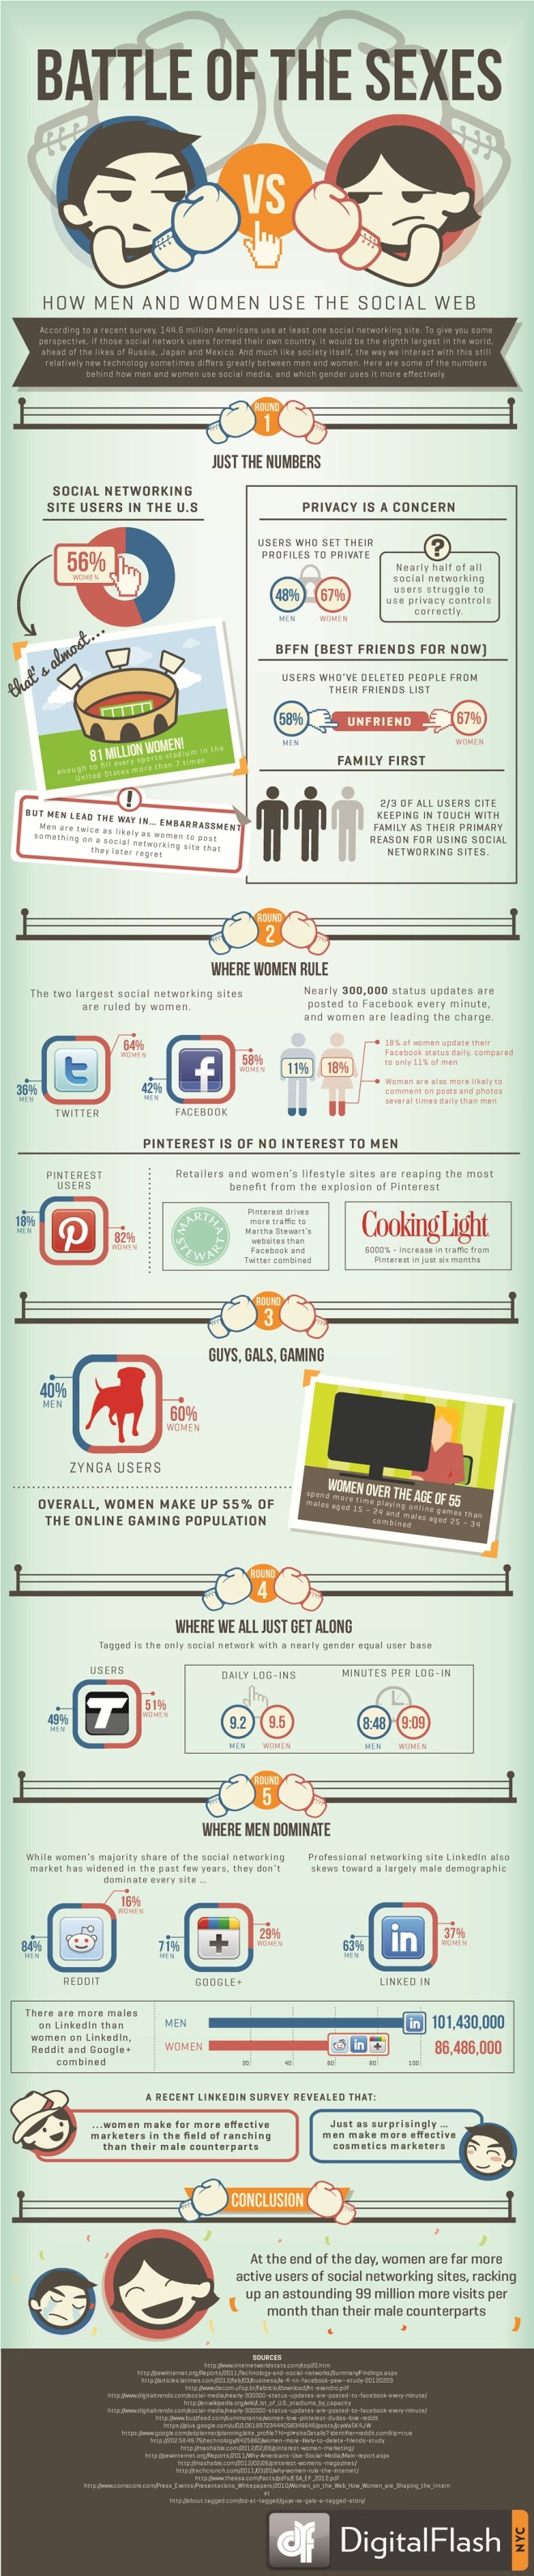 Men vs. Women - Social Web